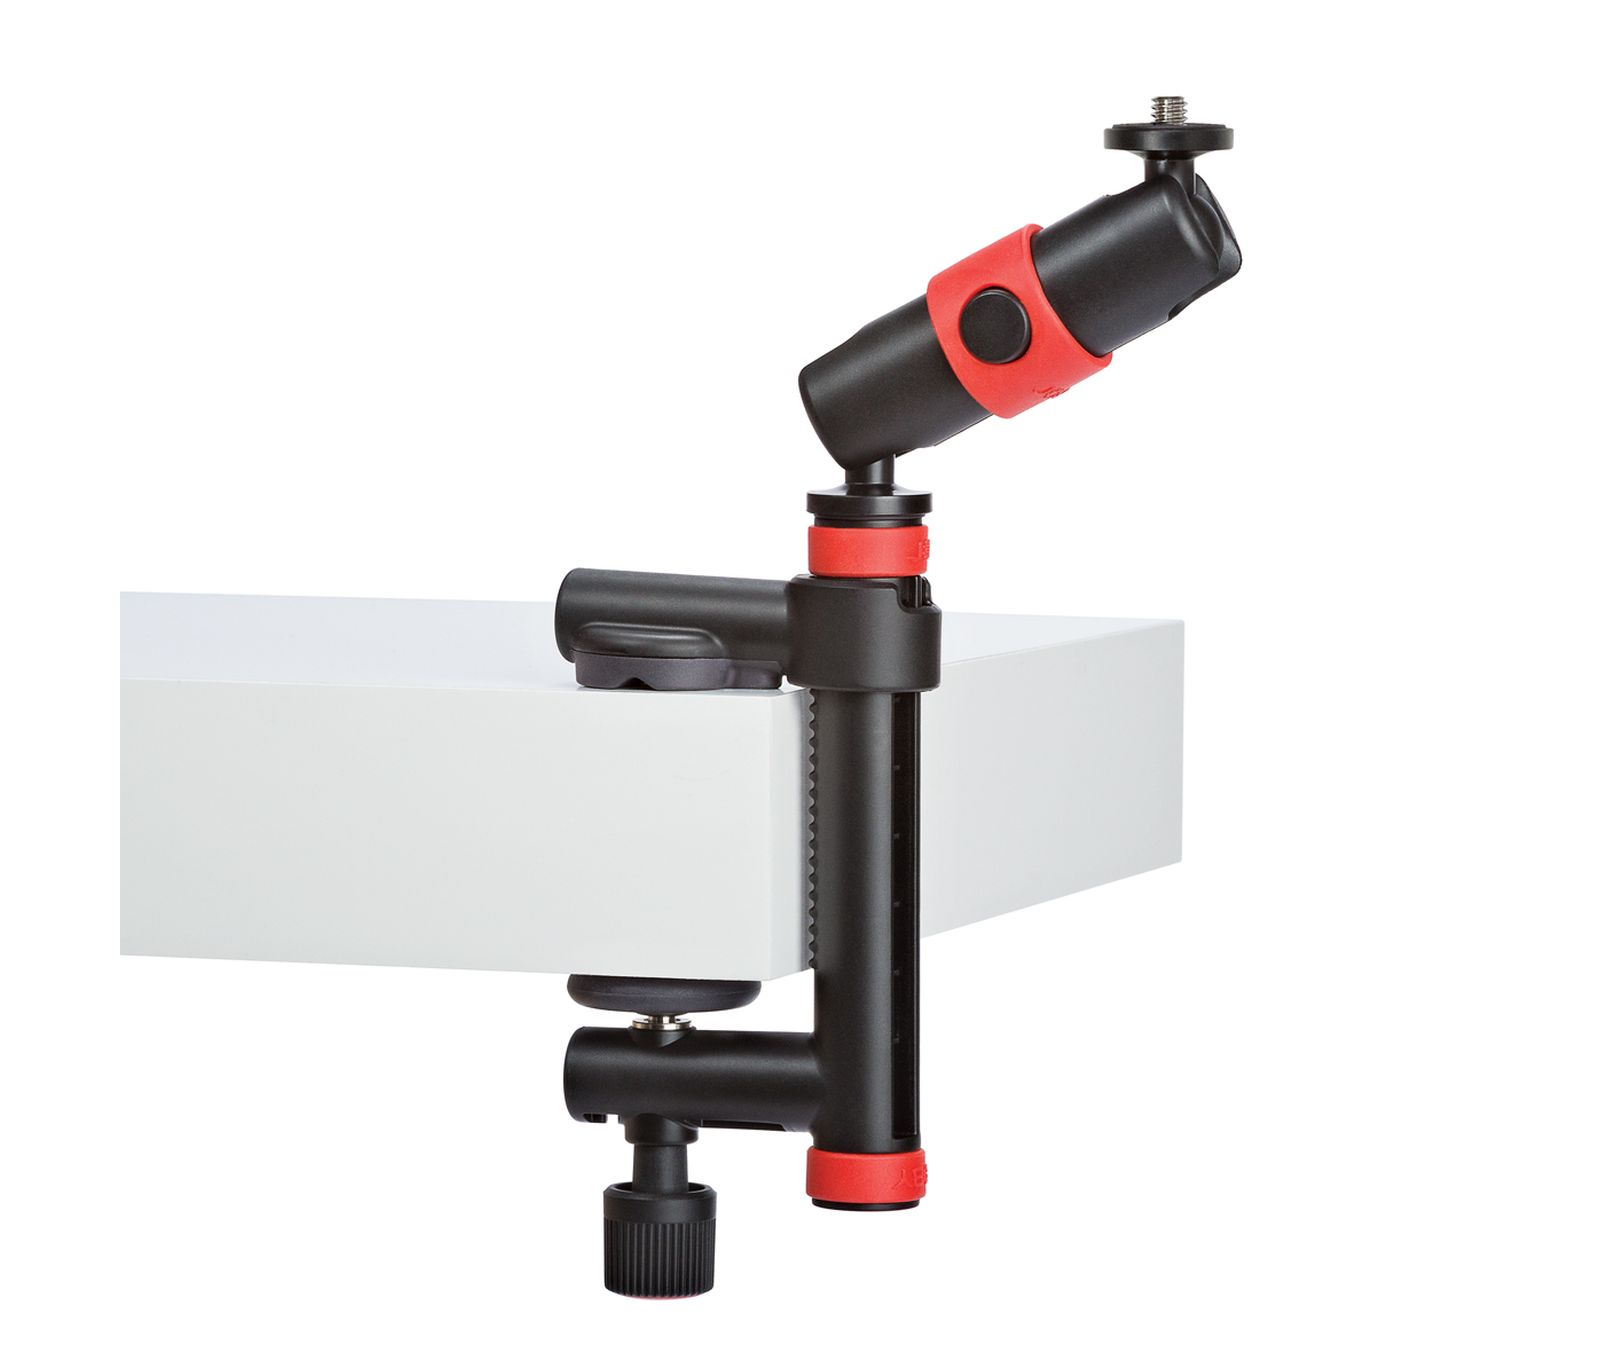 Action Clamp & Locking Arm Negro/Rojo